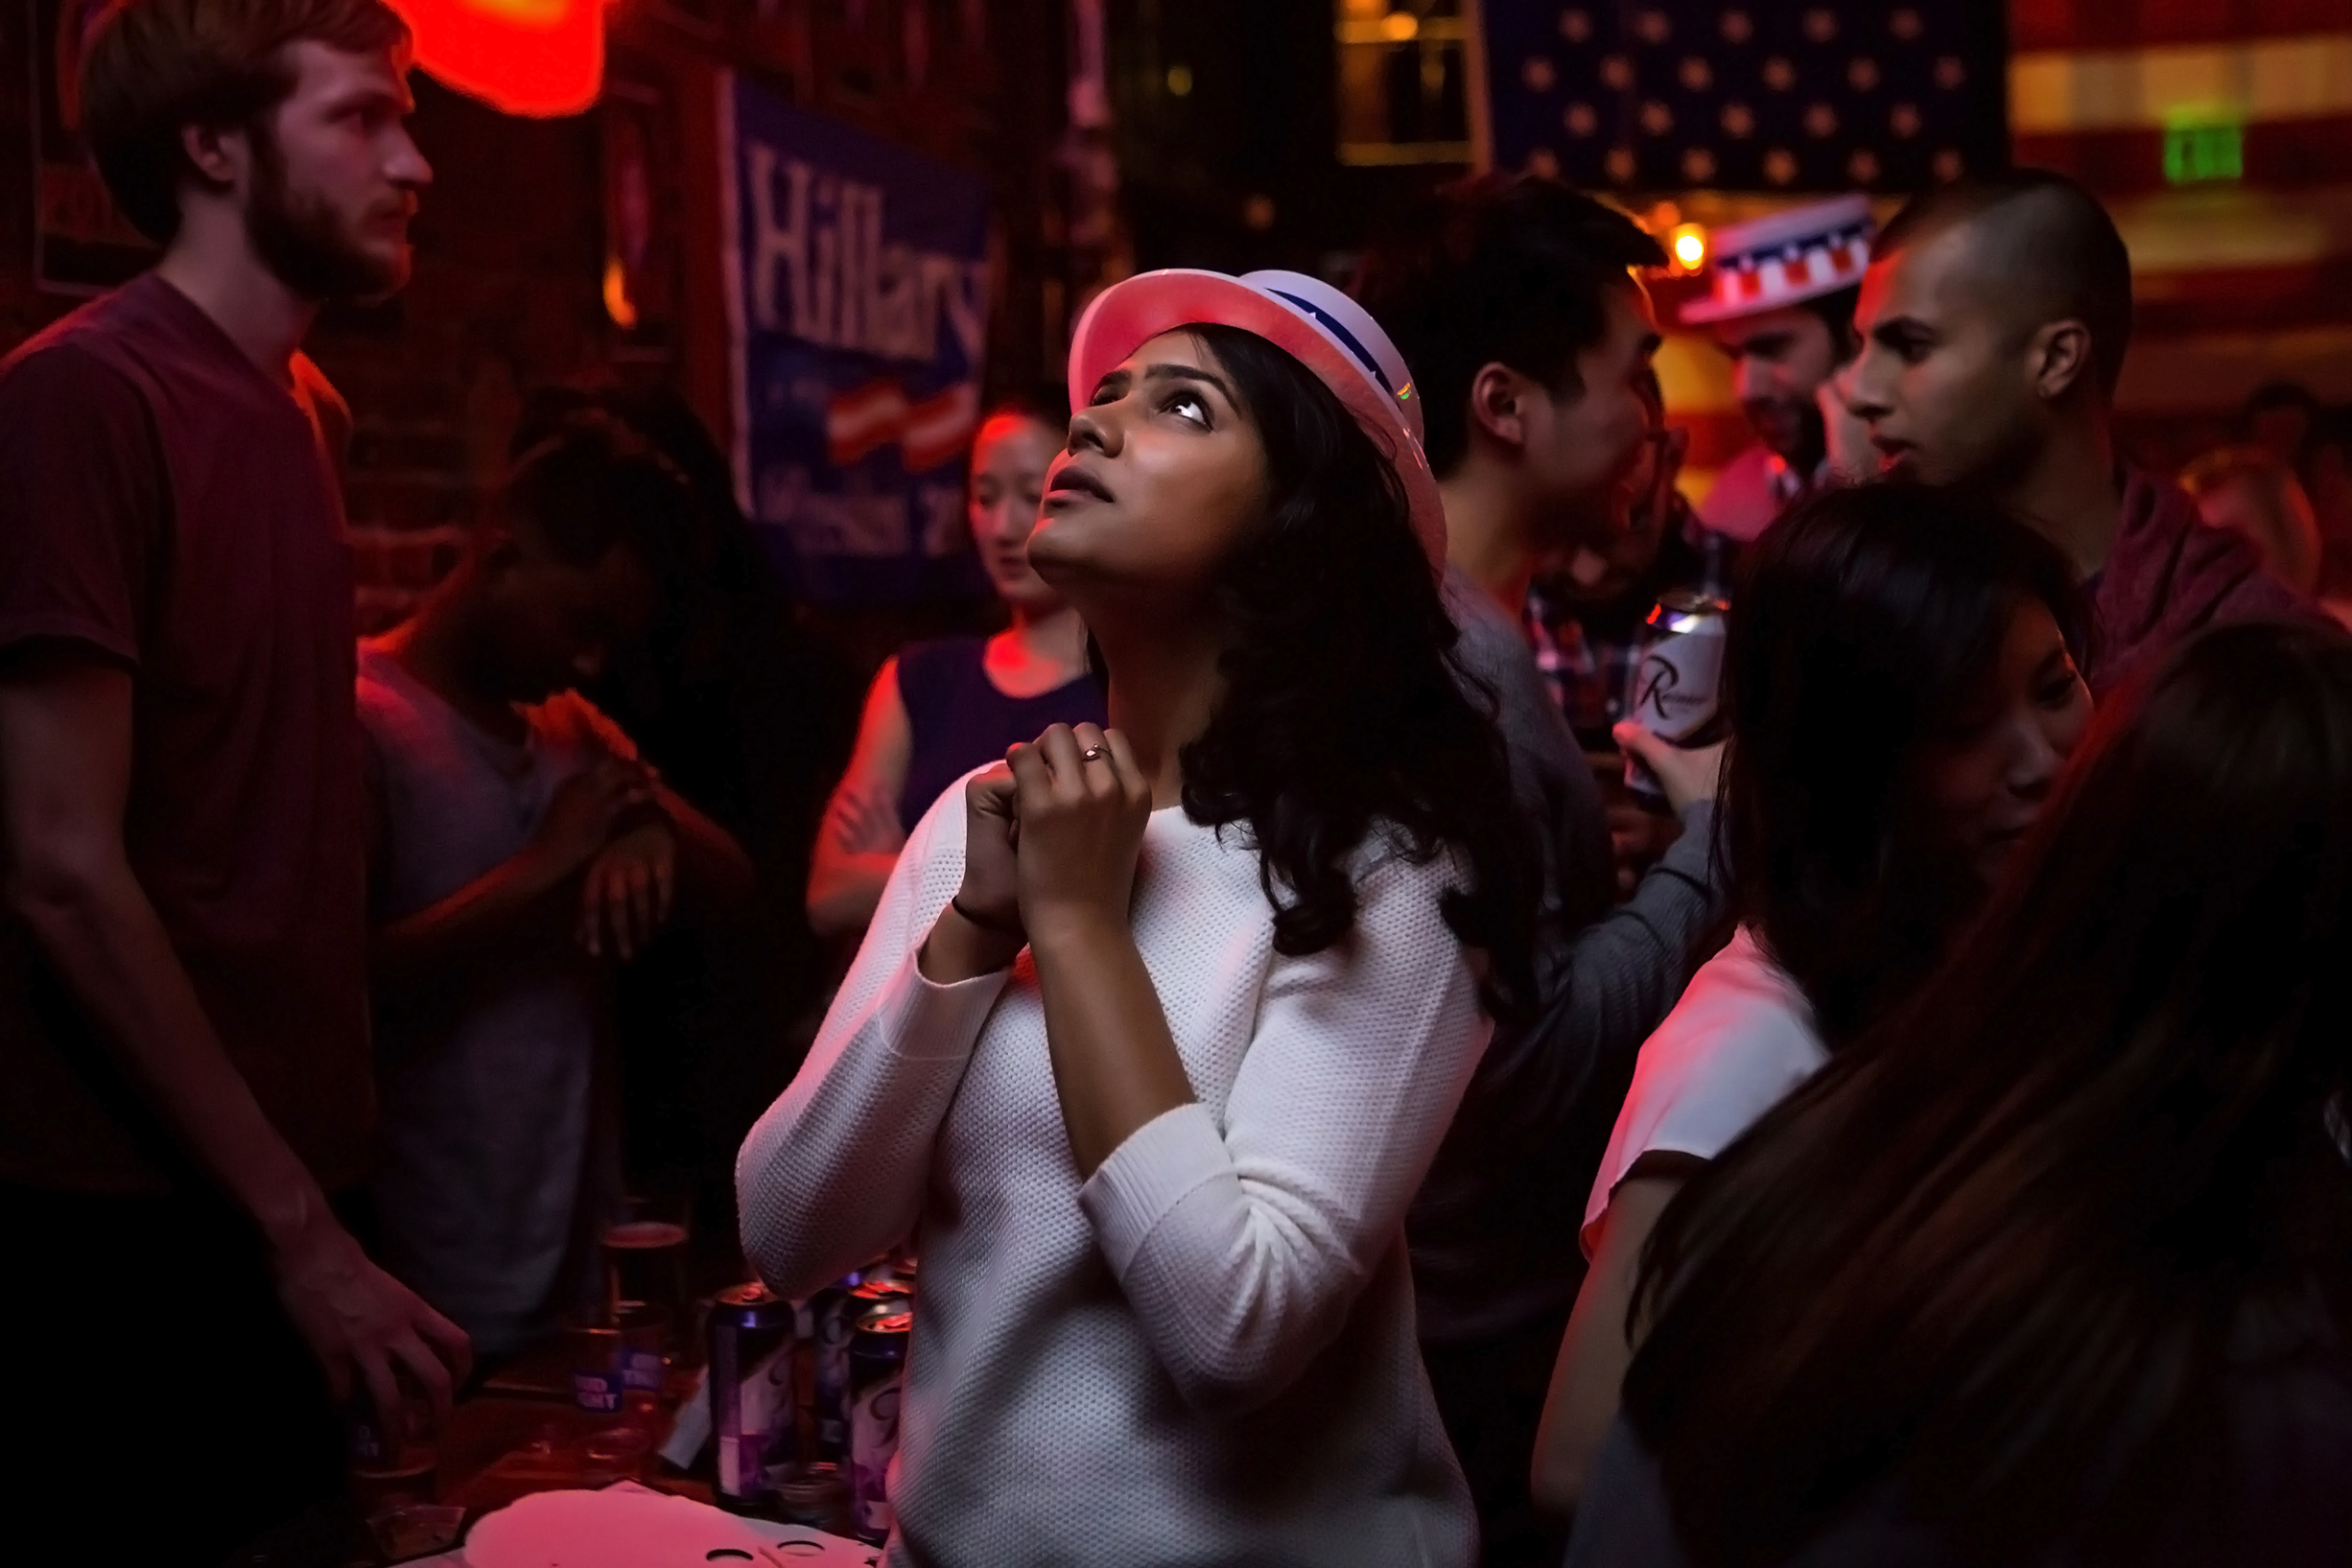 """Sri Vasamsetti, 22, reacts to presidential candidate Donald Trump's progress in the swing state of Florida during an election viewing party at the Comet Tavern in Seattle's Capitol Hill neighborhood, Tuesday, Nov. 8, 2016. """"It's terrifying to watch the map turn red,"""" Vasamsetti said. (Sy Bean / The Seattle Times)"""